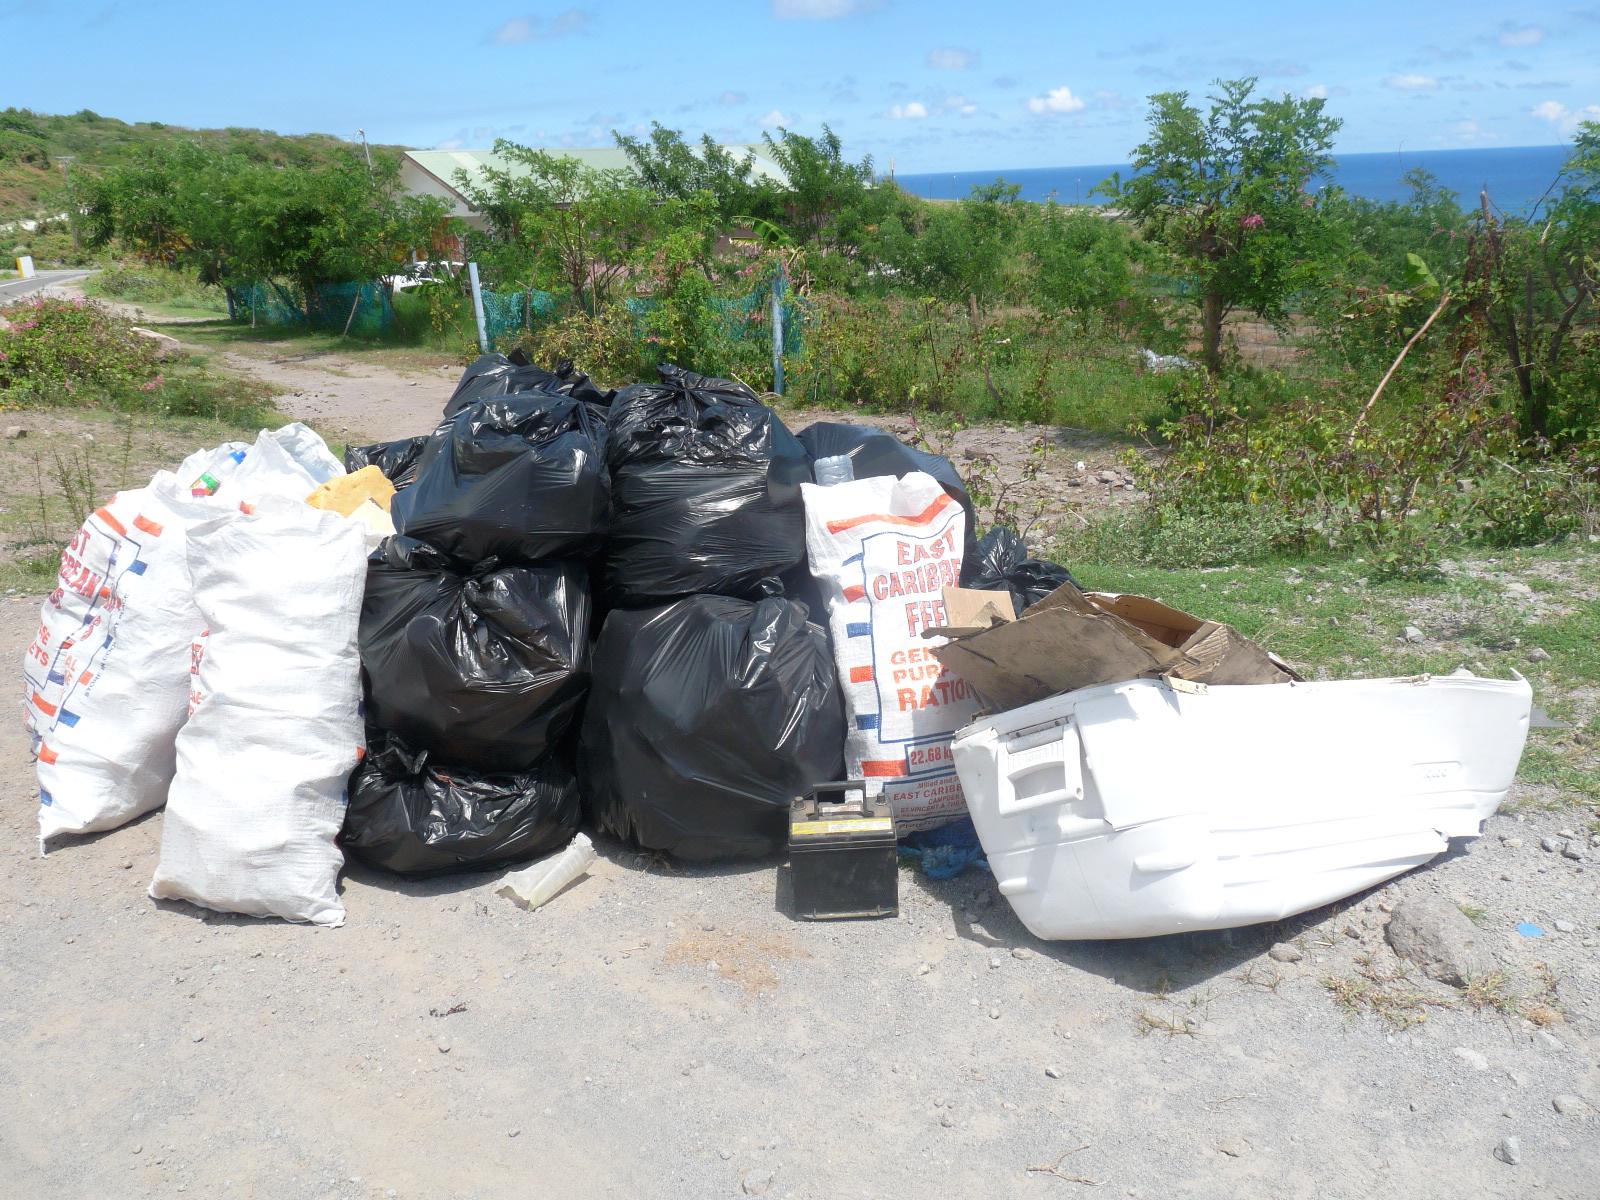 International Coastal Cleanup 2015 - Saint Kitts and Nevis